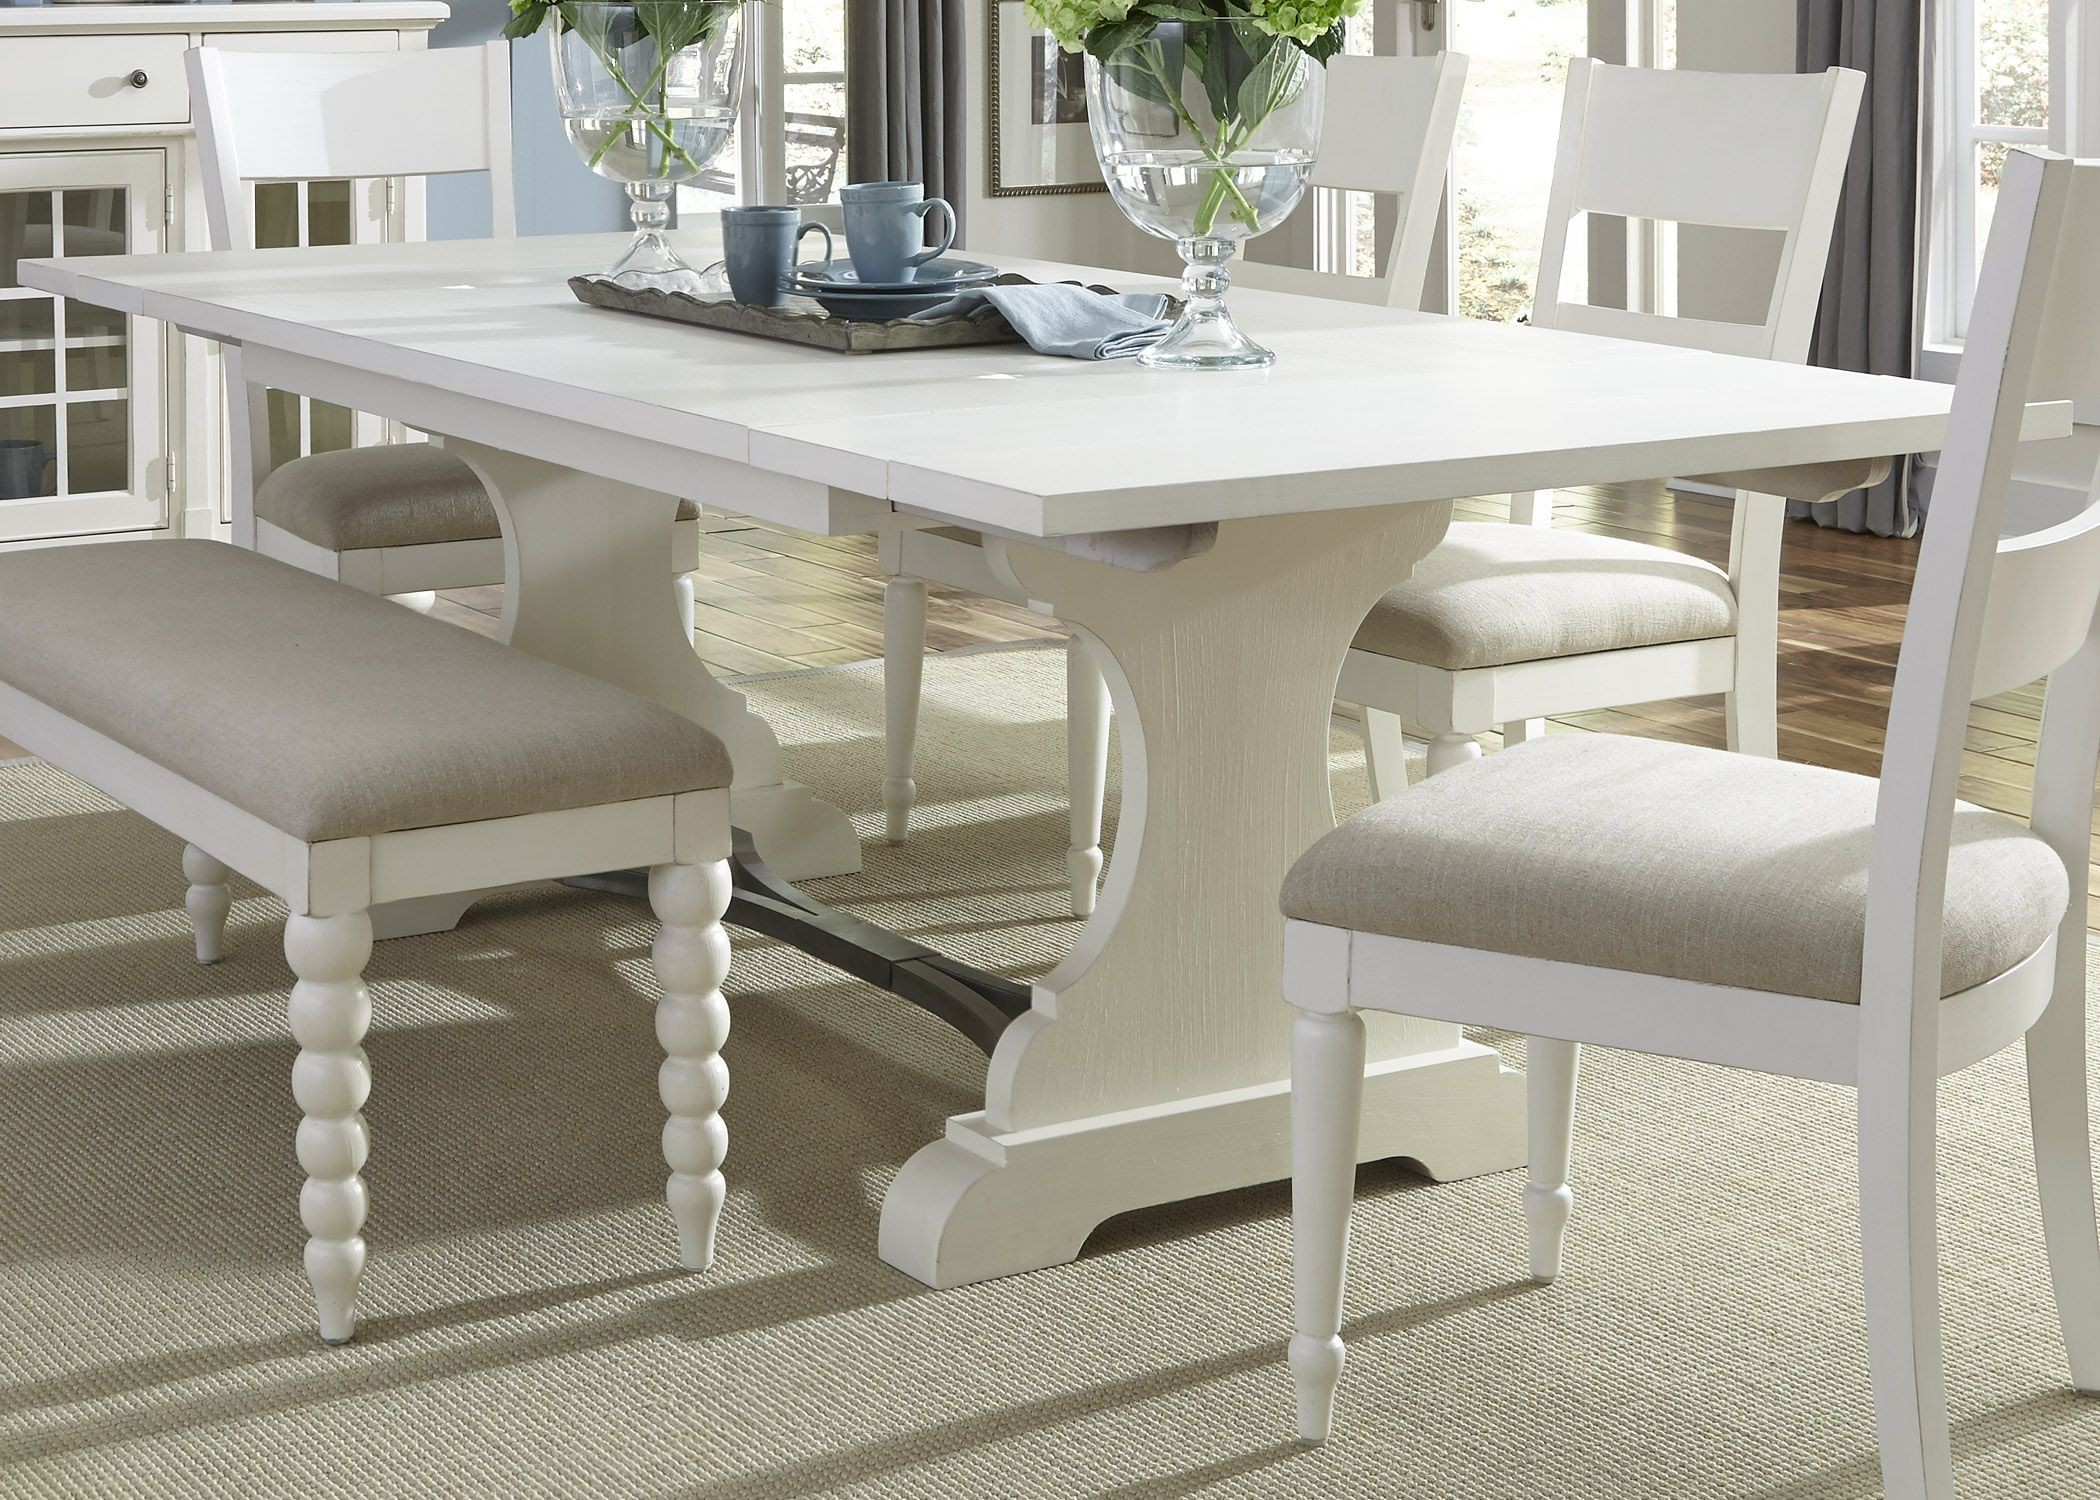 harbor view ii extendable trestle dining table from liberty 631 t4294 coleman furniture. Black Bedroom Furniture Sets. Home Design Ideas